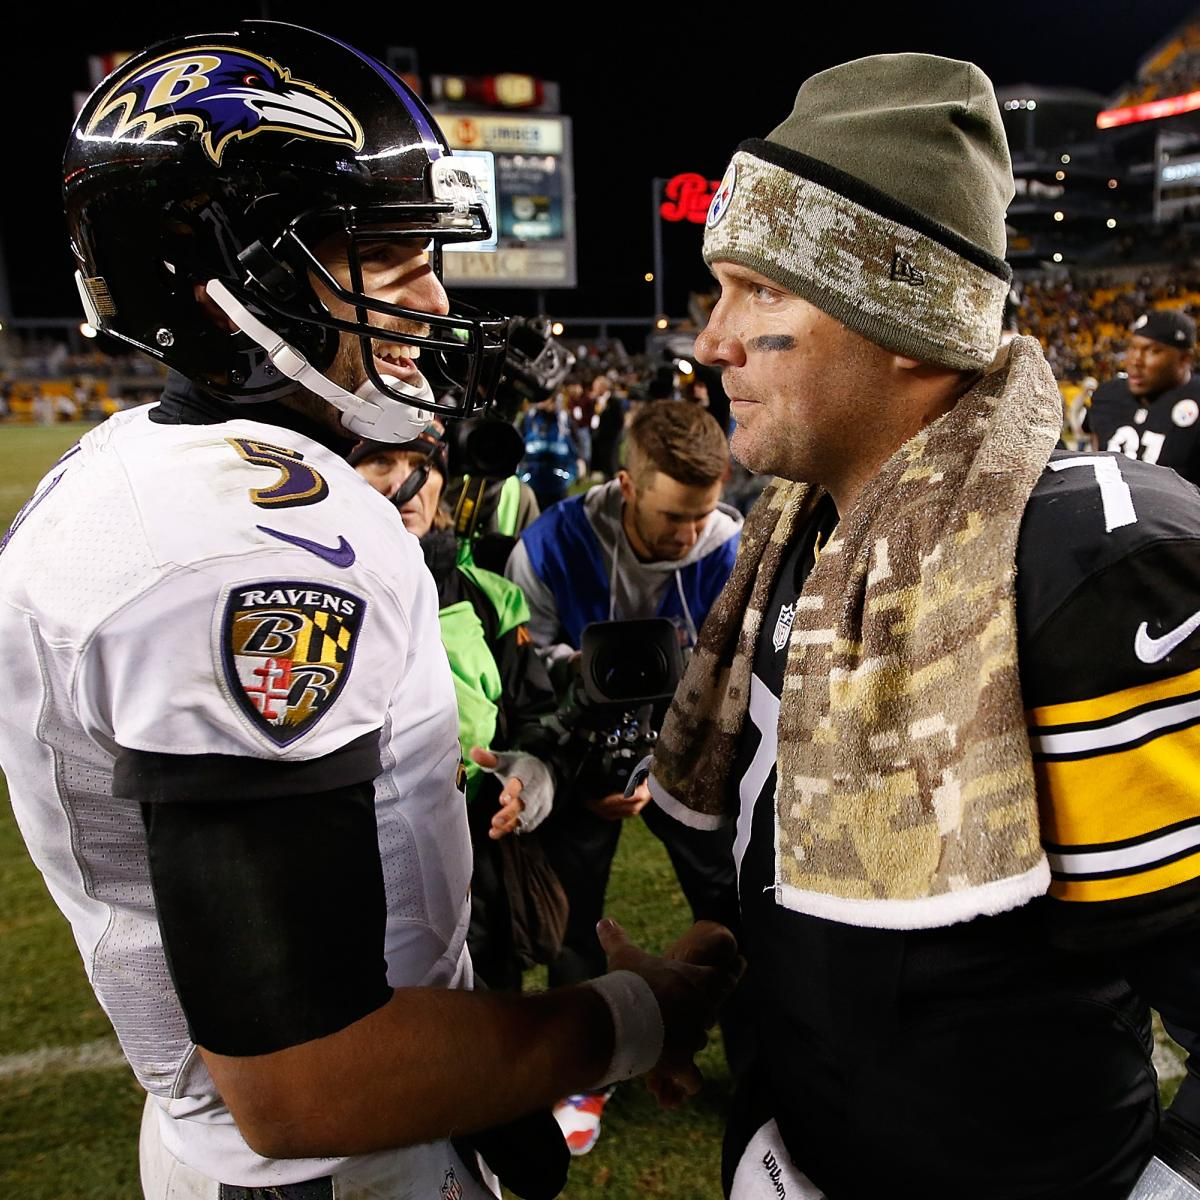 NFL Playoff Schedule 2014-15: Postseason Picture